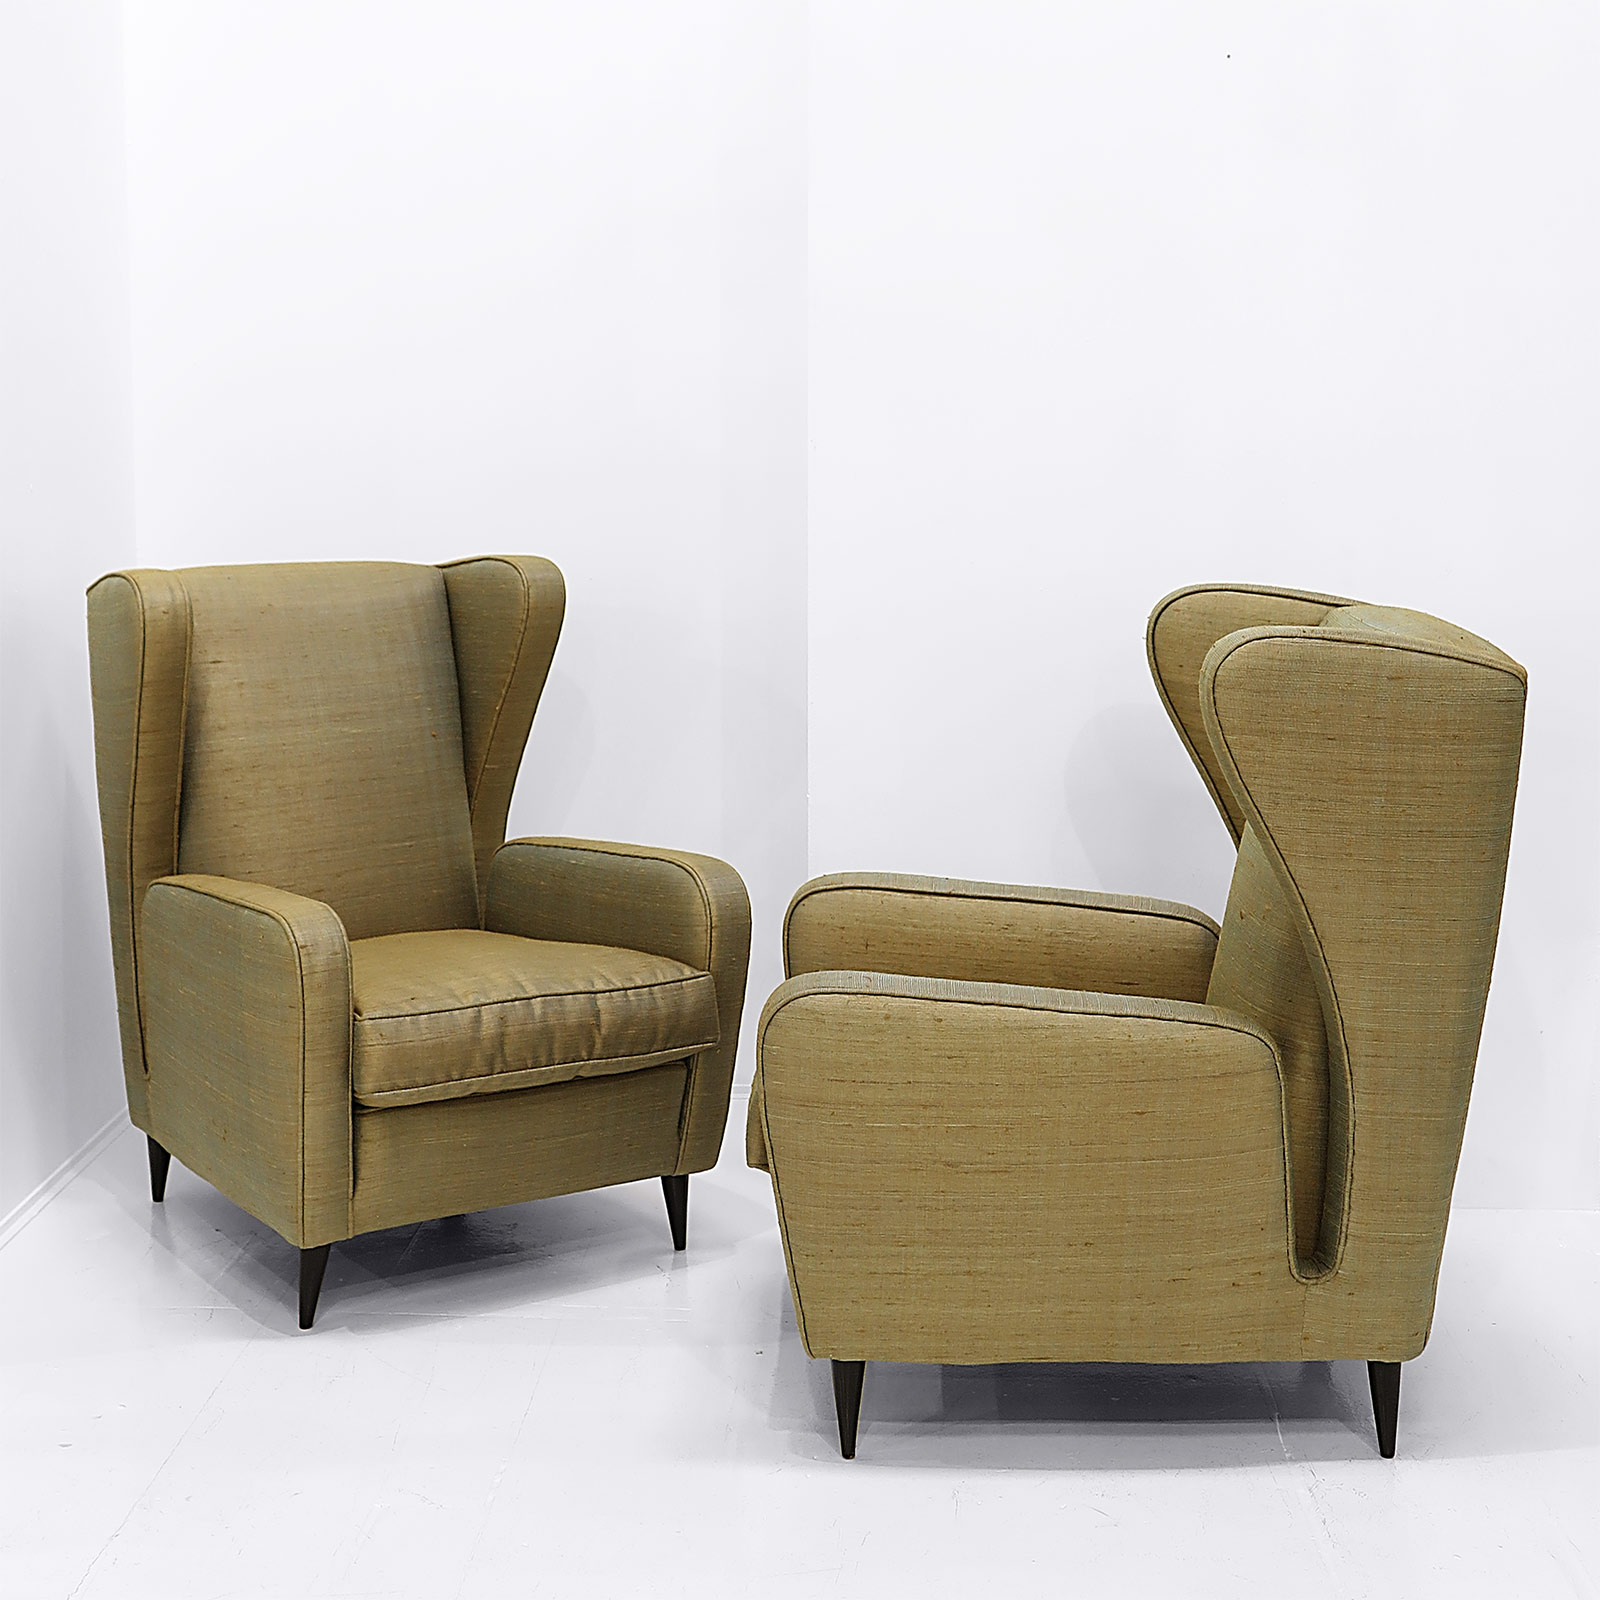 Lounge chairs by isa nicholas alistair - Library lounge chairs ...